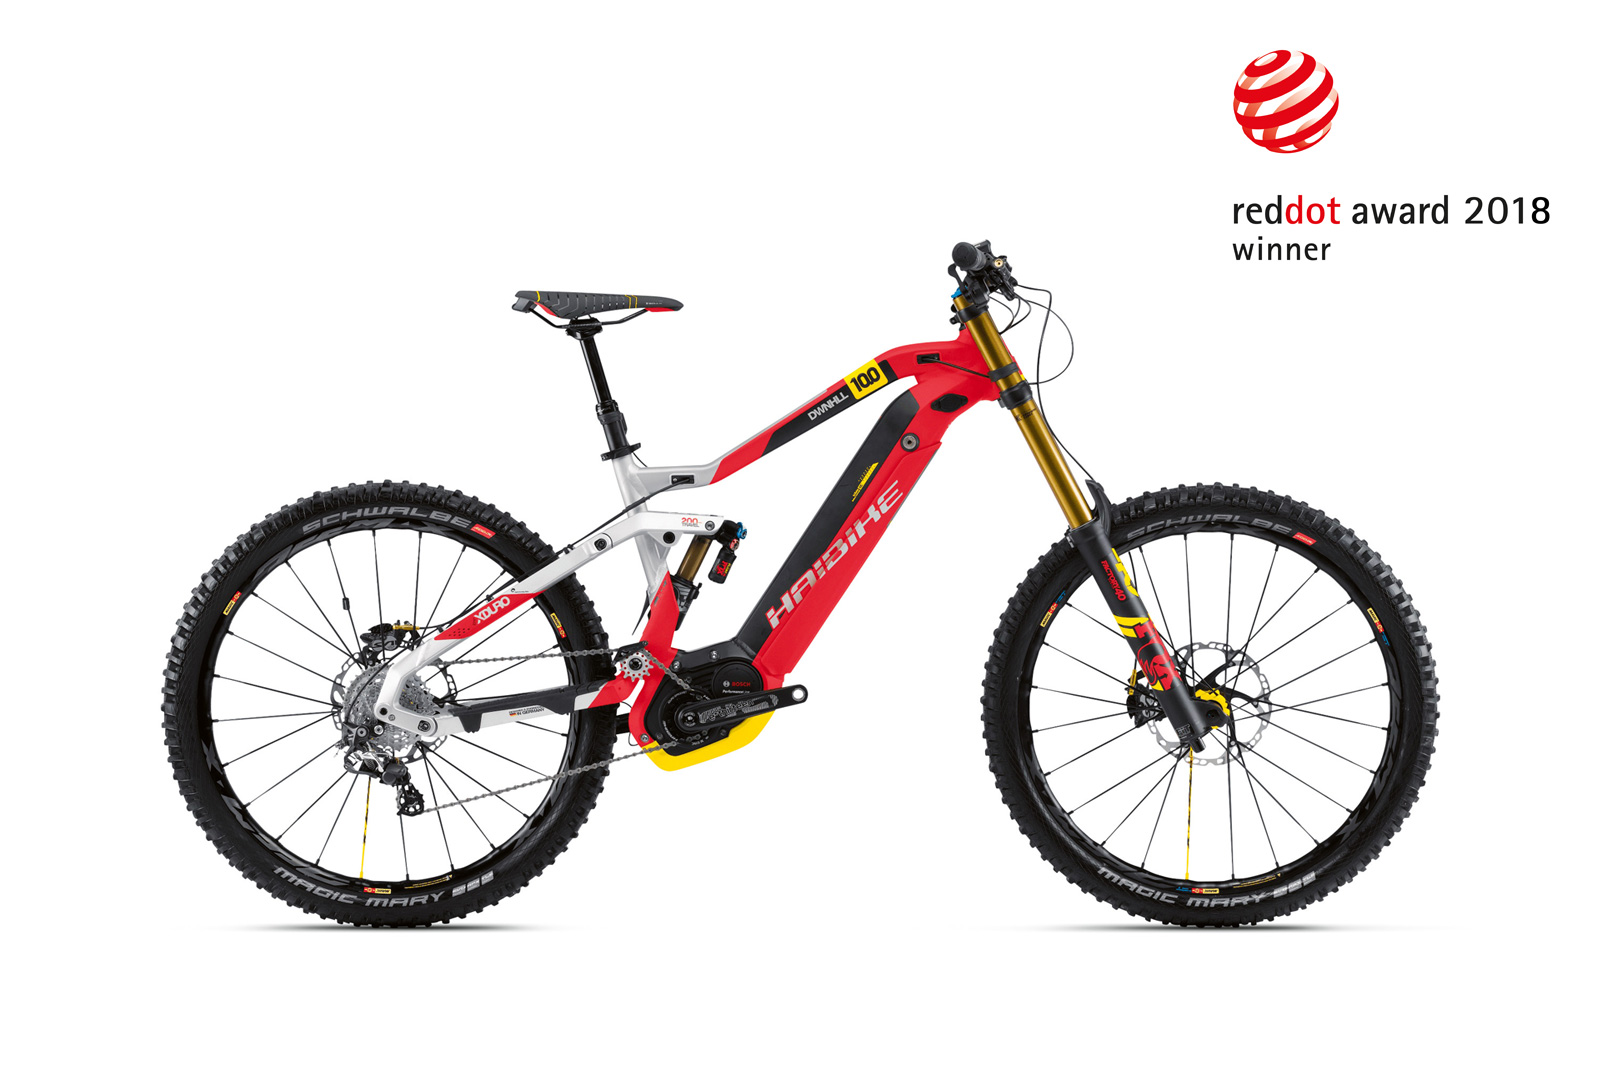 Haibike® | Innovation and Performance | Our Awards